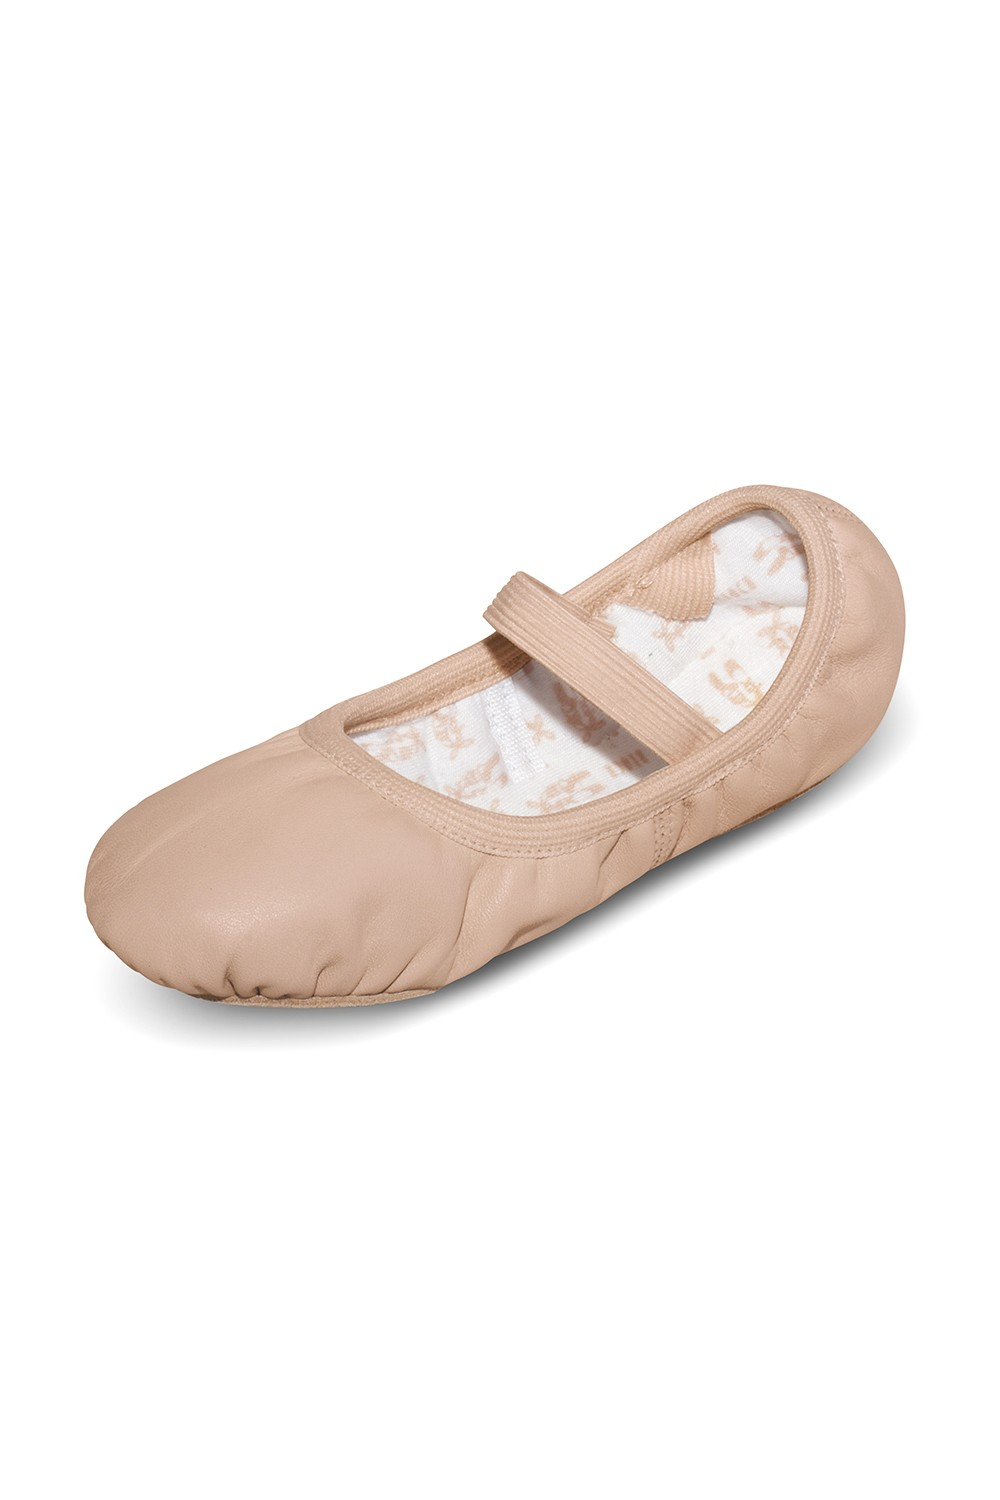 Giselle Women's Ballet Shoes